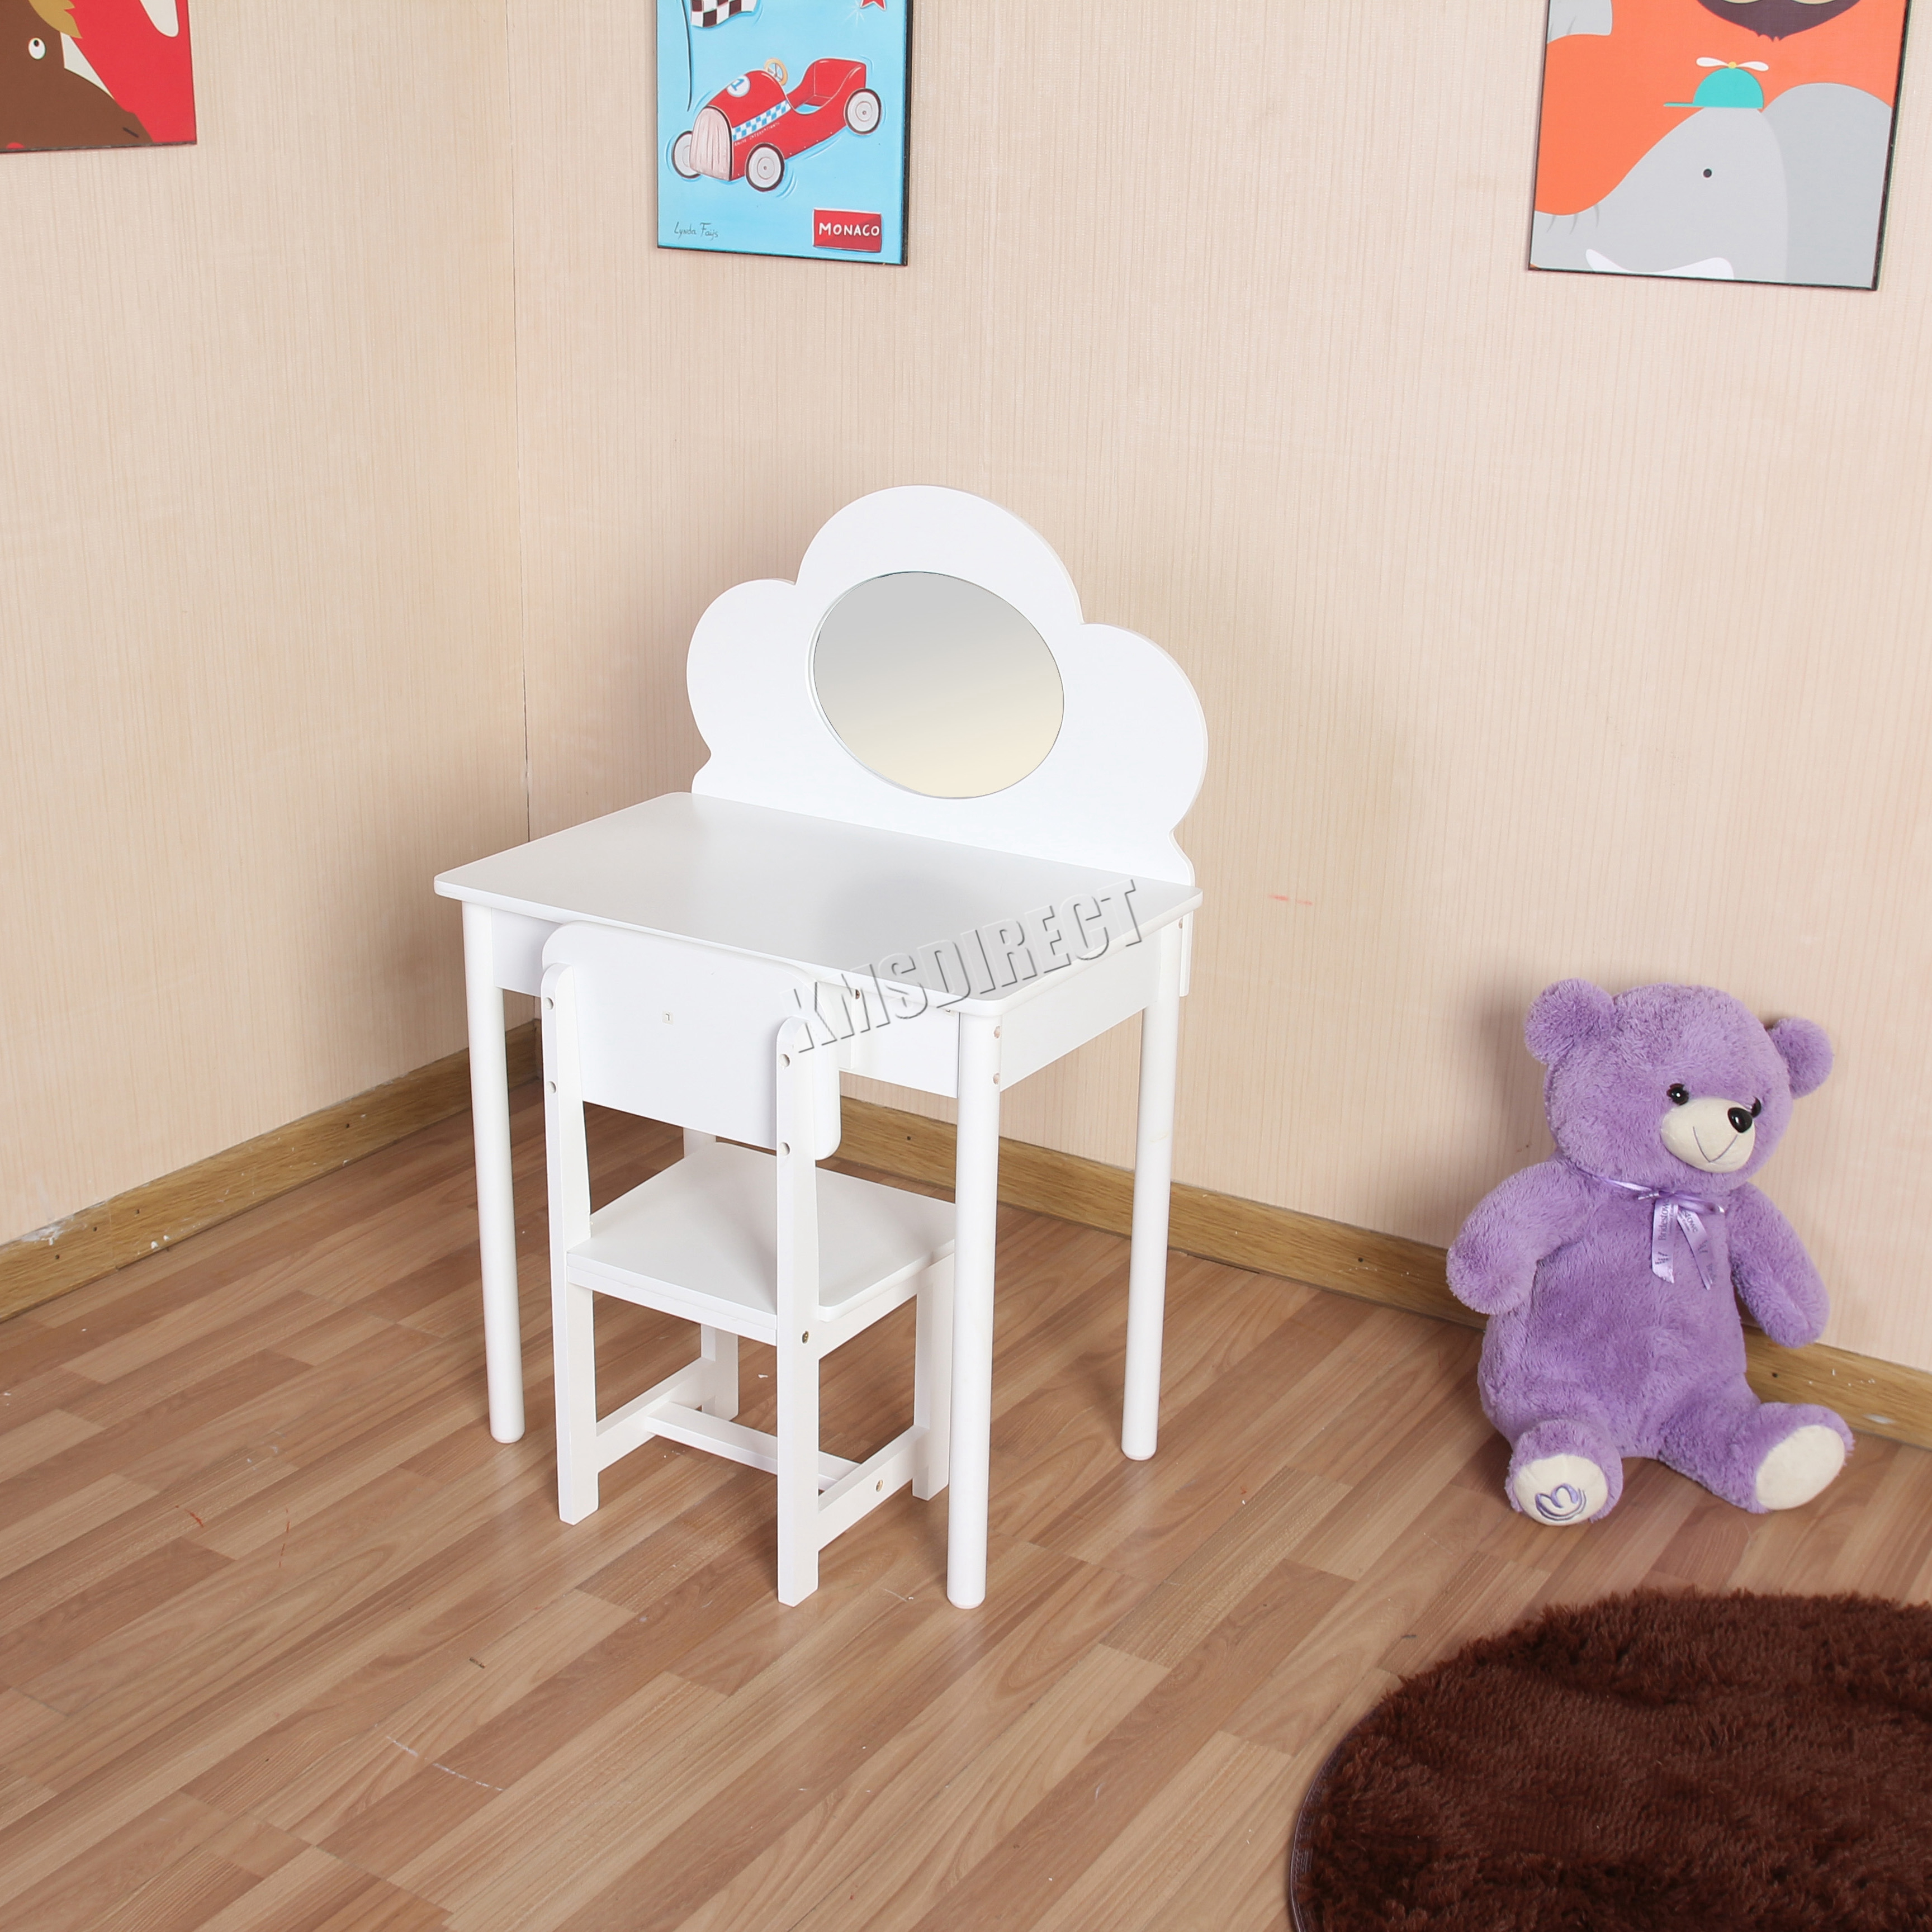 style vanity stool frame makeup mirror set traditional itm oval table ashley bedroom and wooden wood